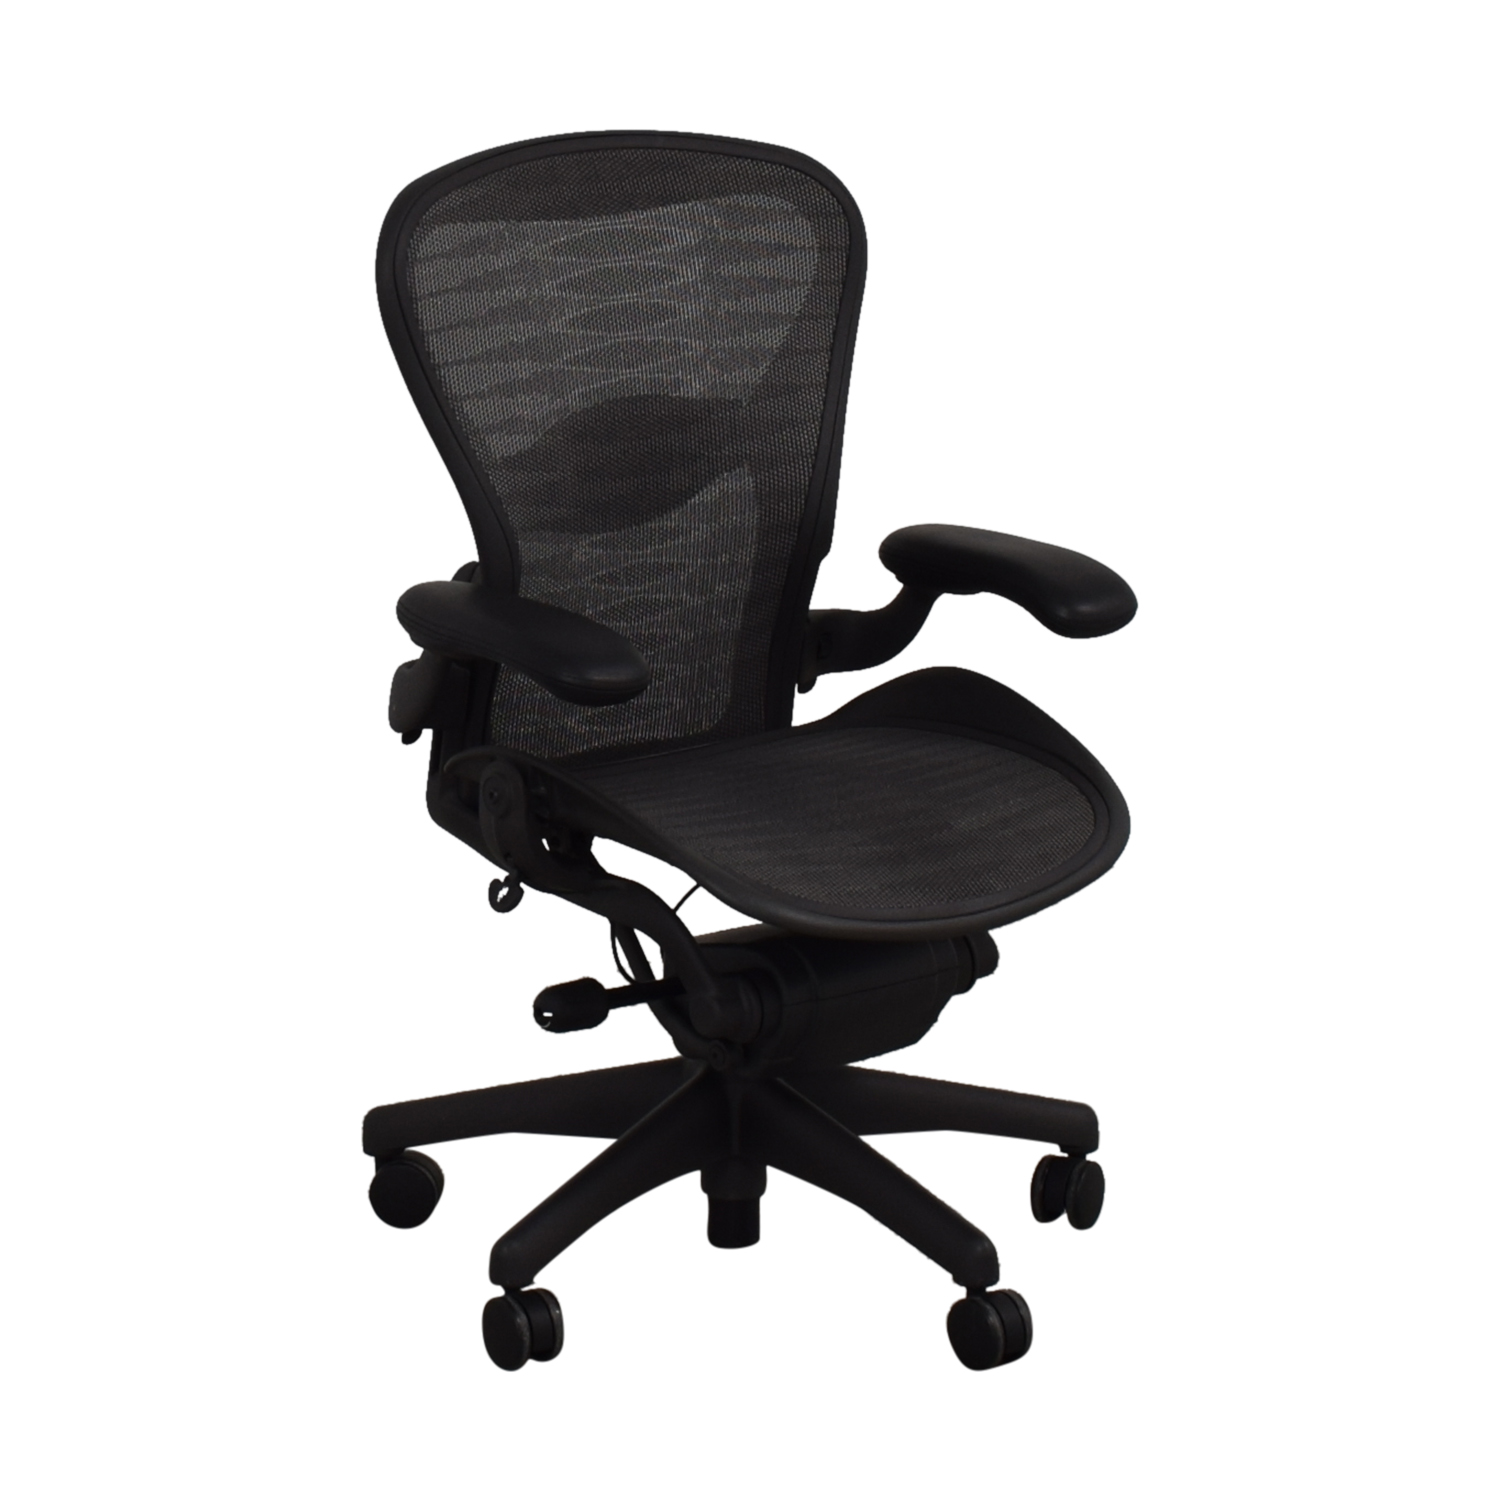 Herman Miller Herman Miller Aeron Size B Chair on sale